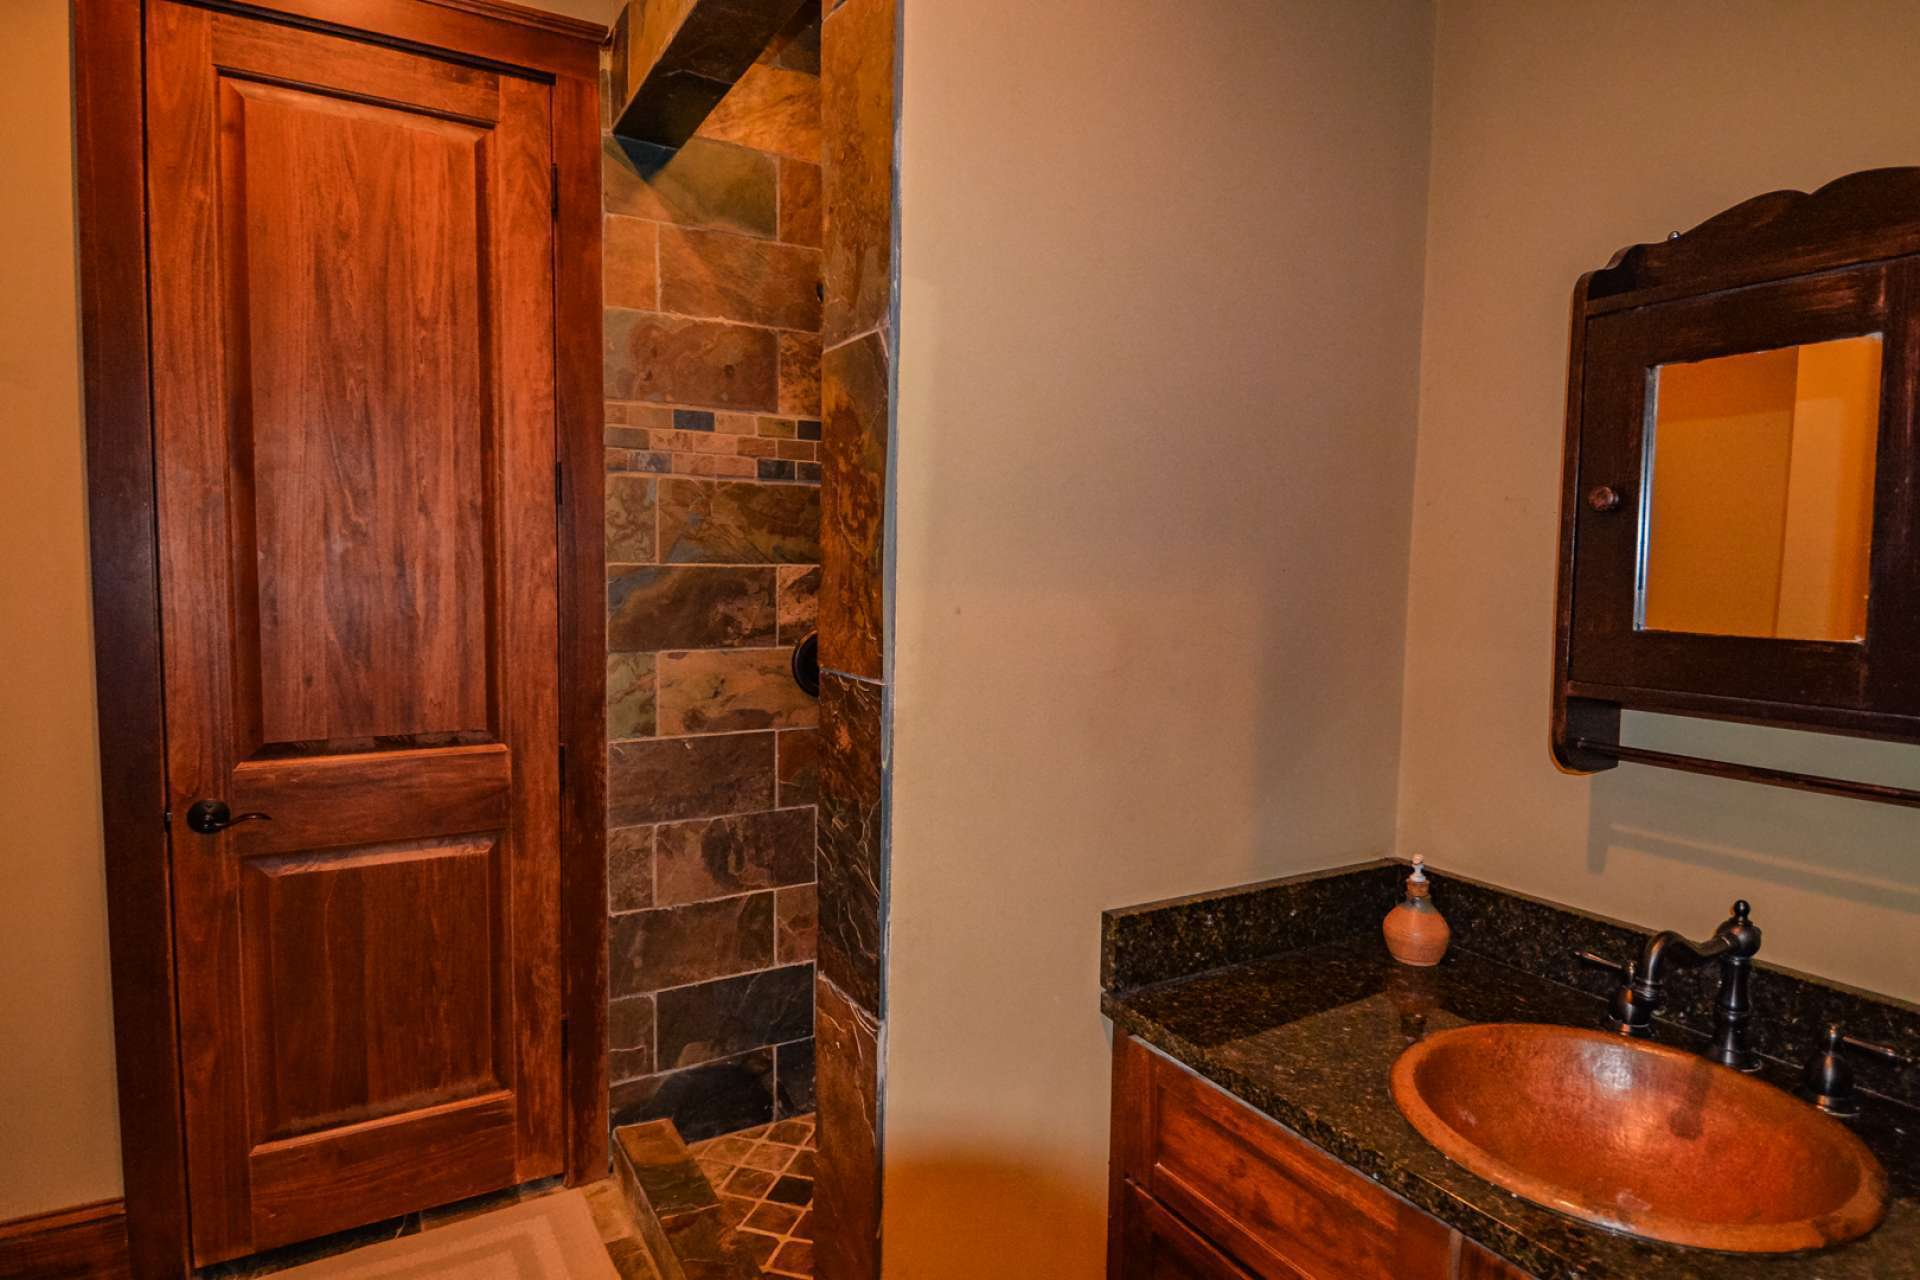 The lower level bathroom has a beautifully tiled shower and a copper sink.